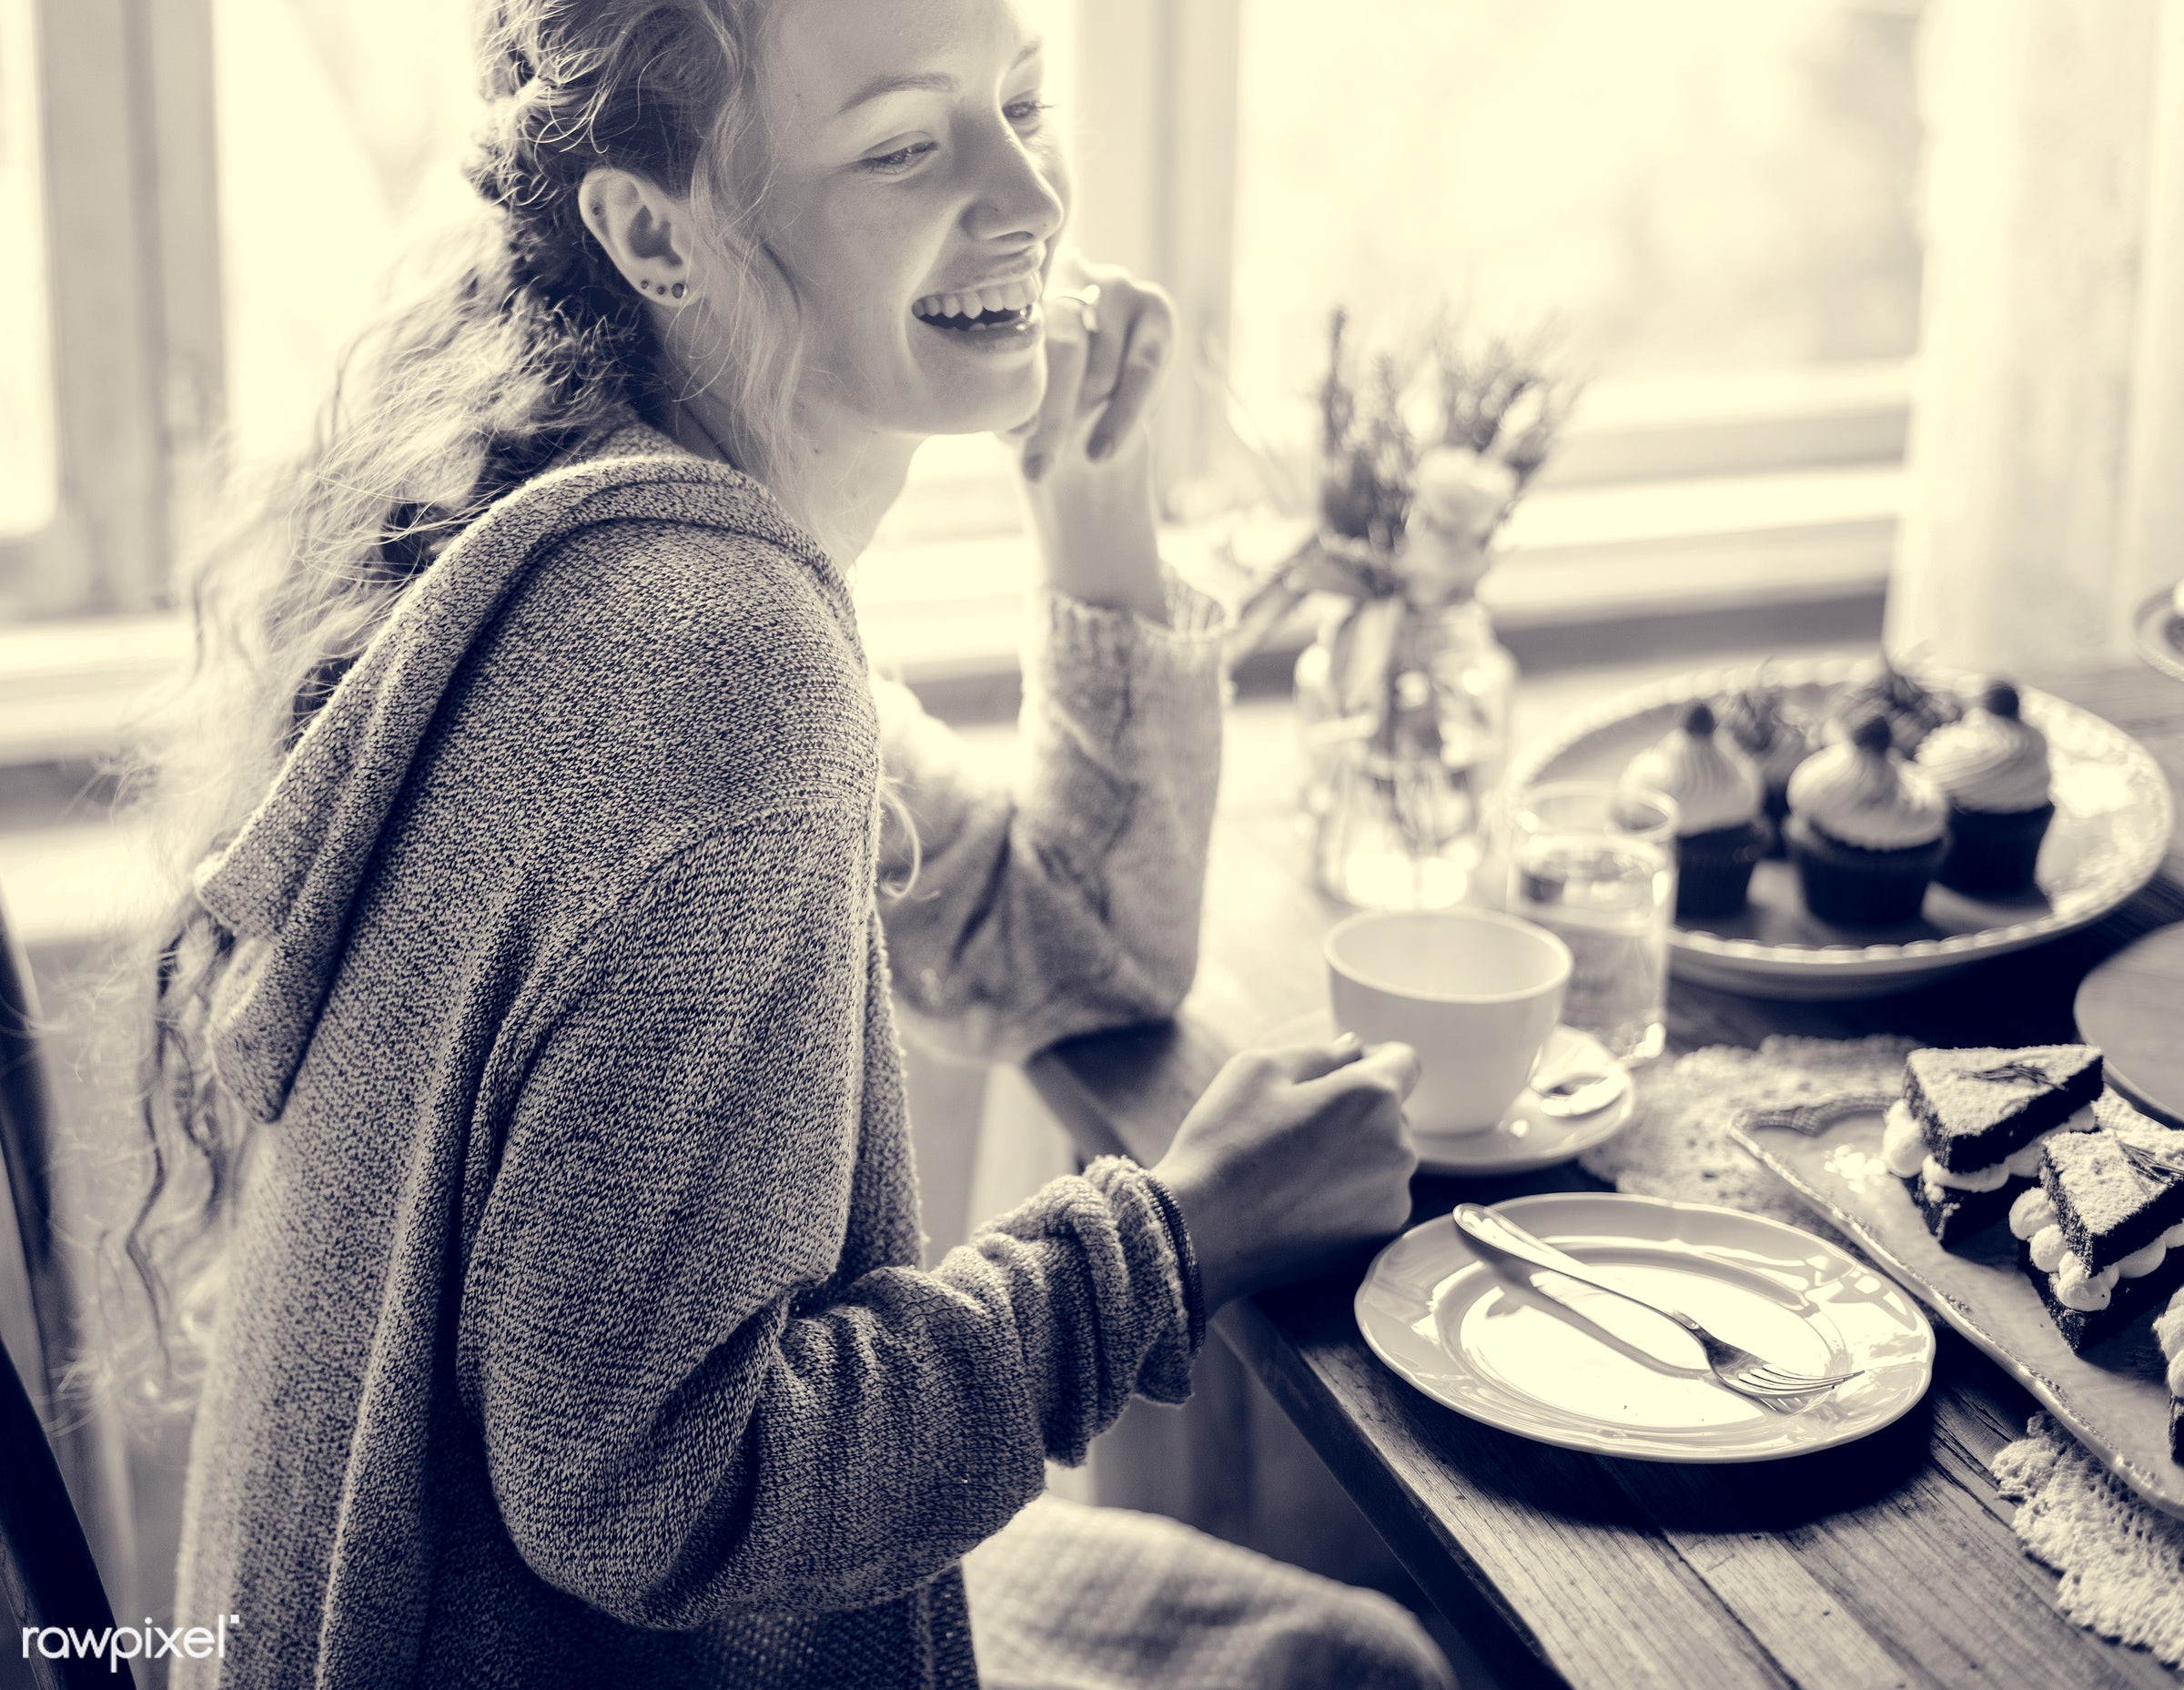 cake, smilng, happiness, smile, cheerful, dish, person, recipe, party, tea, people, together, tea party, friends, bakery,...